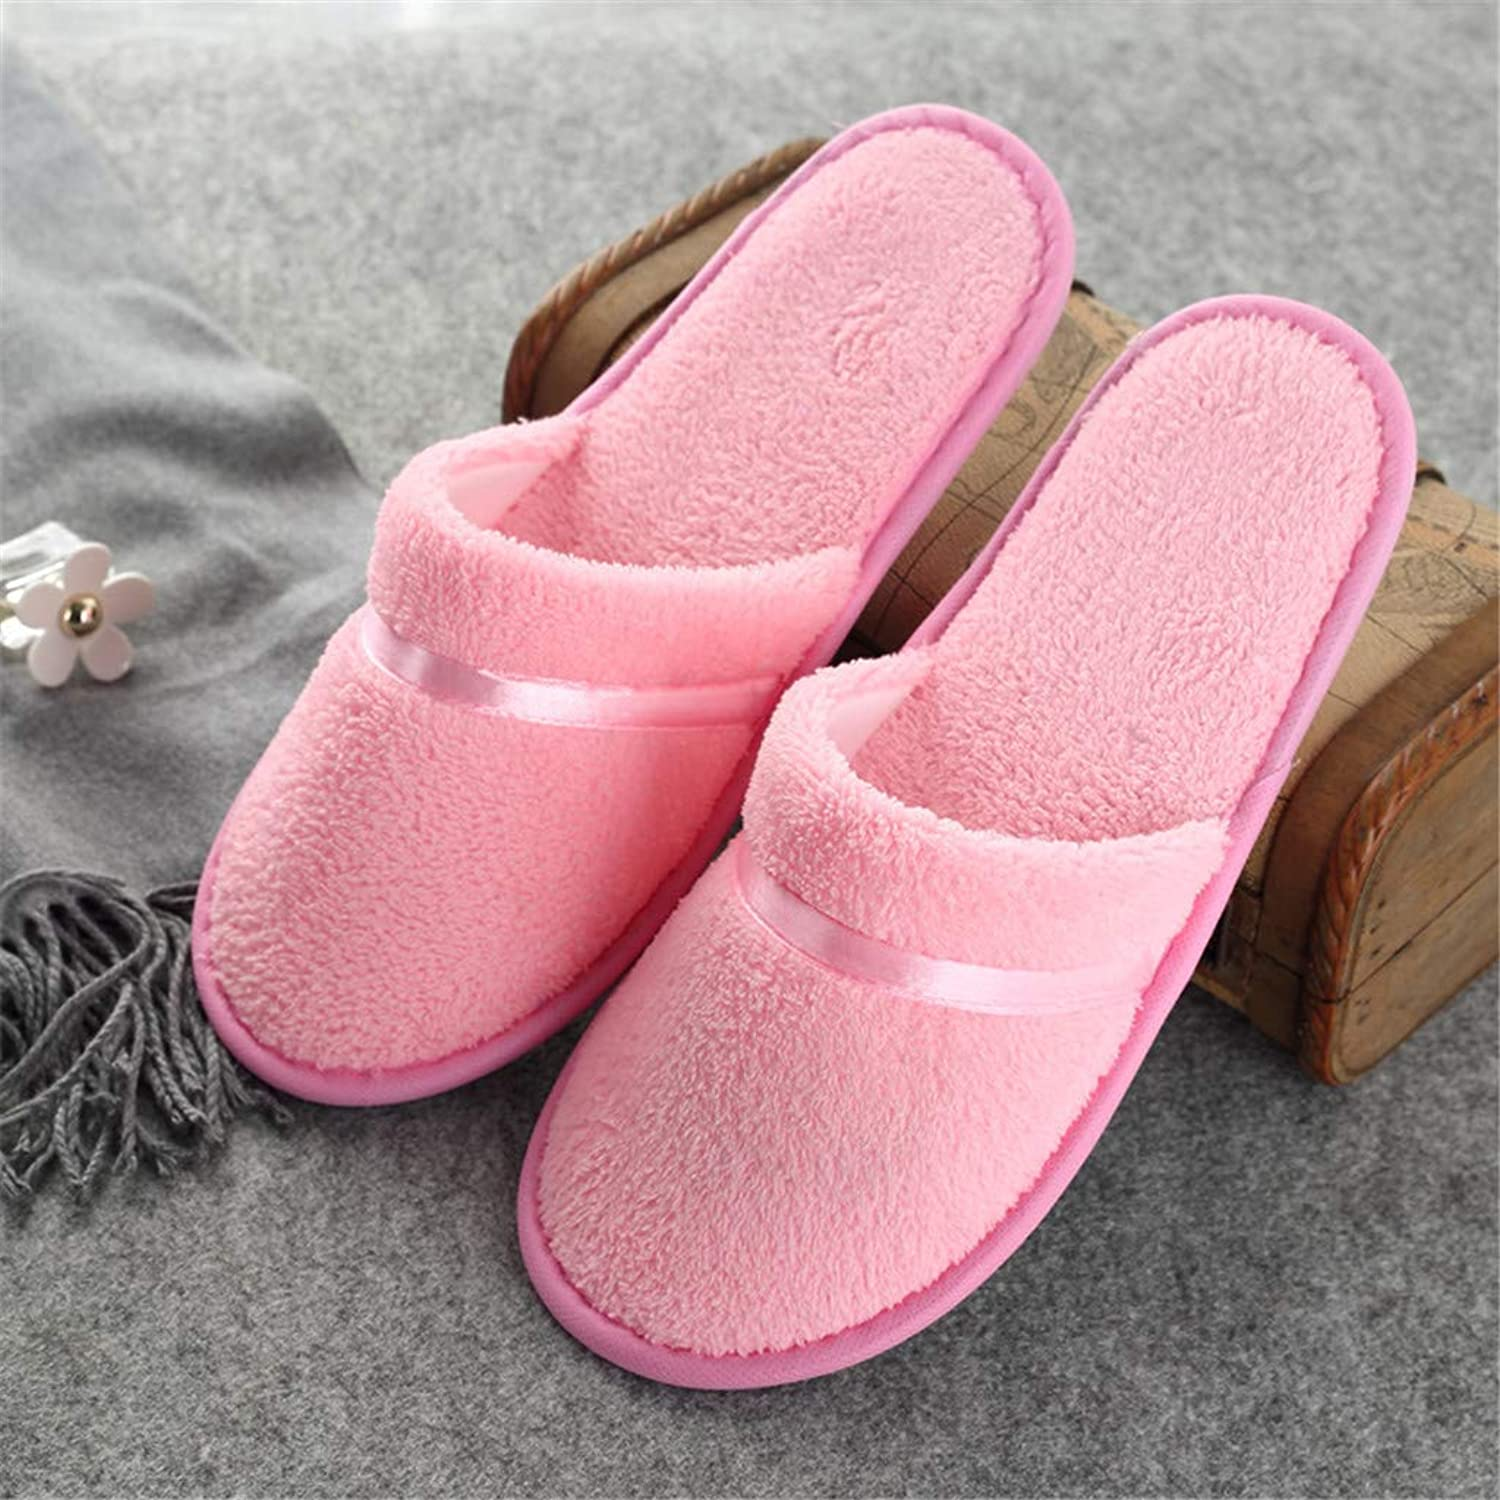 Spa Slippers, Closed Toe Unisex Coral Fleece Slipper, Non Disposable,Washable, (5 Pairs)